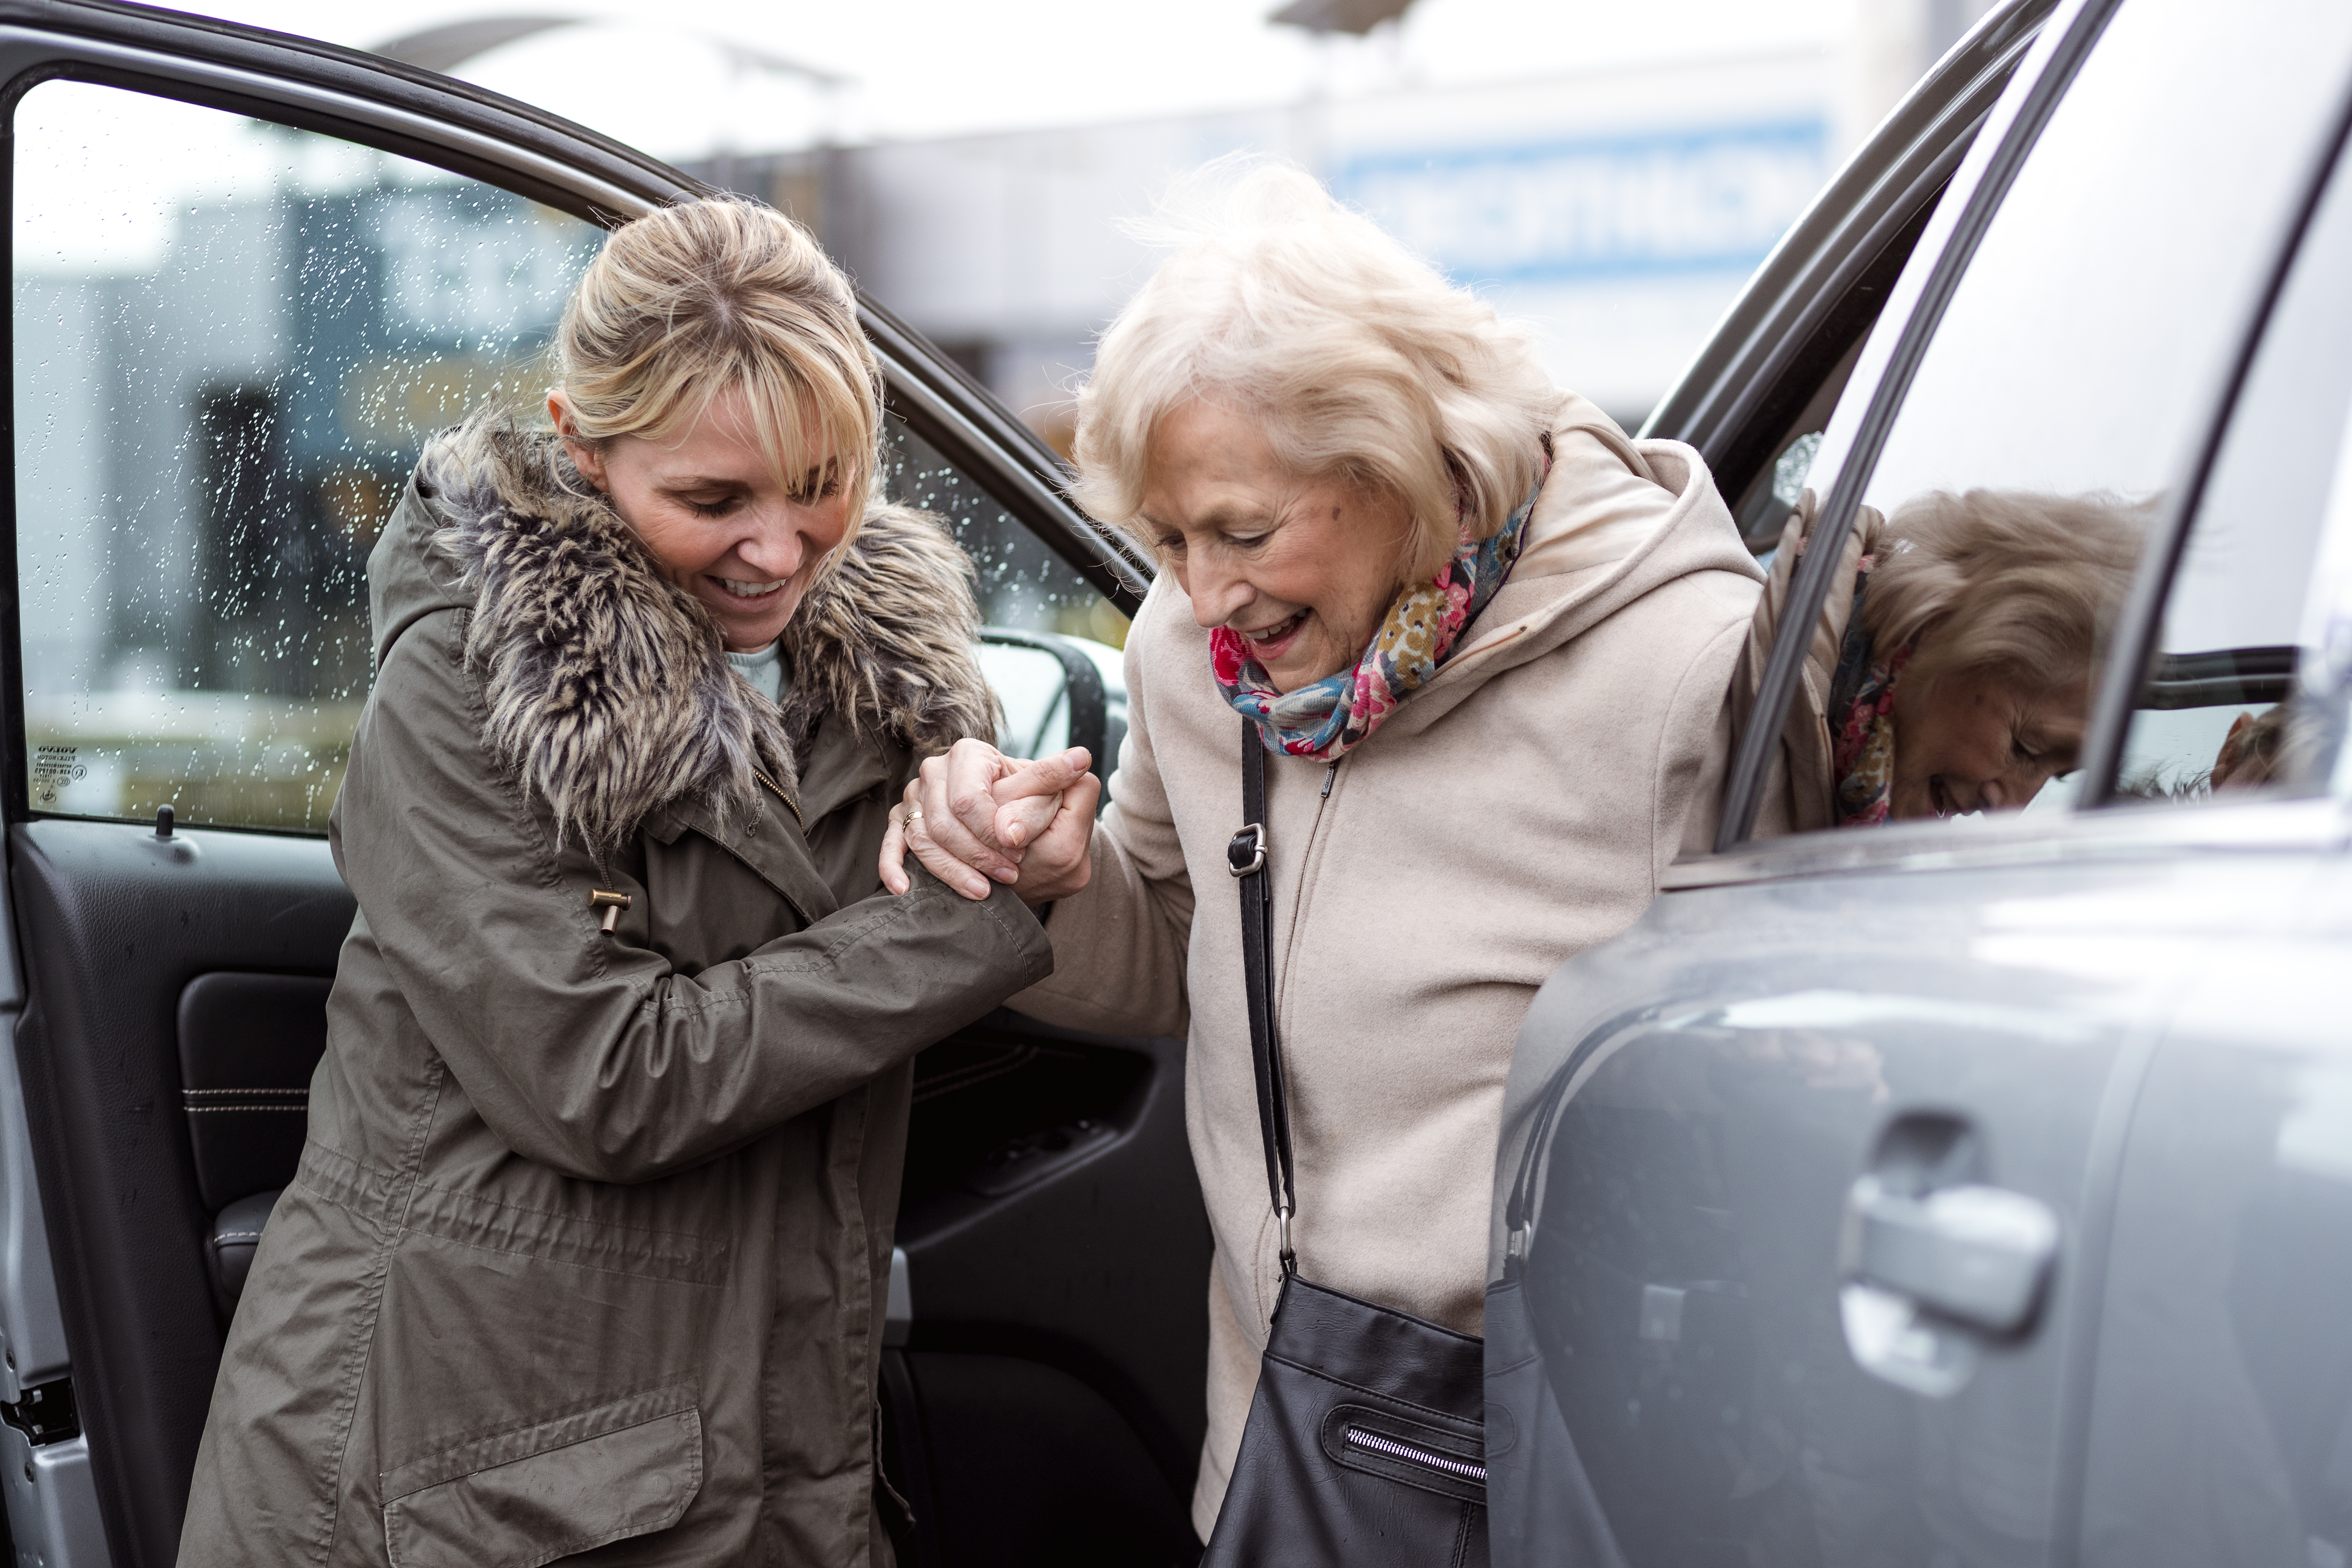 2019.02.07 Stock Photo Outside Daughter or carer helping elderly woman out of the car 001